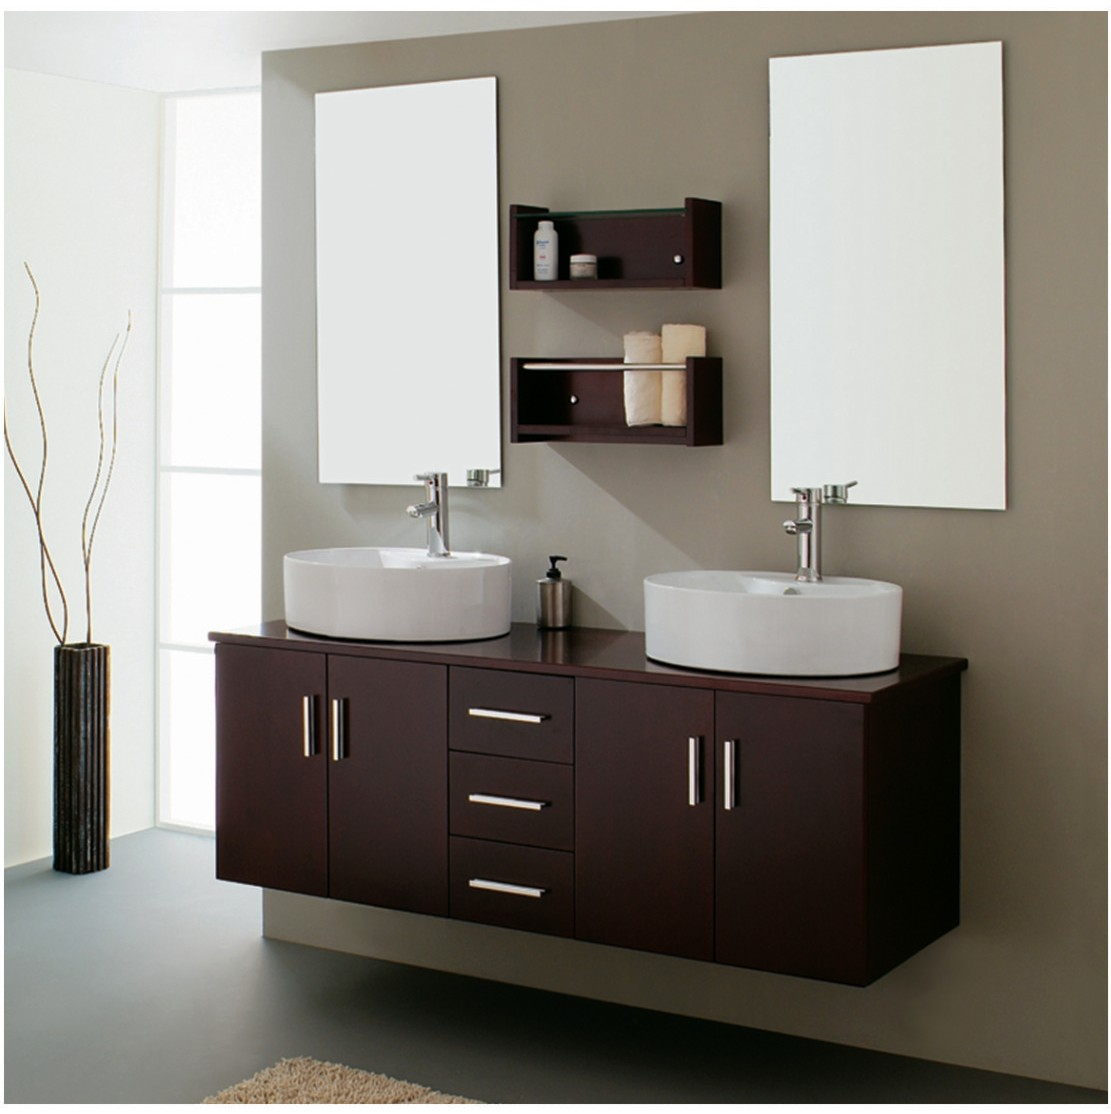 Interior Bathroom Cabinets Design small bathroom vanity cabinets design ideas decoration designs guide if you are searching for then should search the same online there many that m